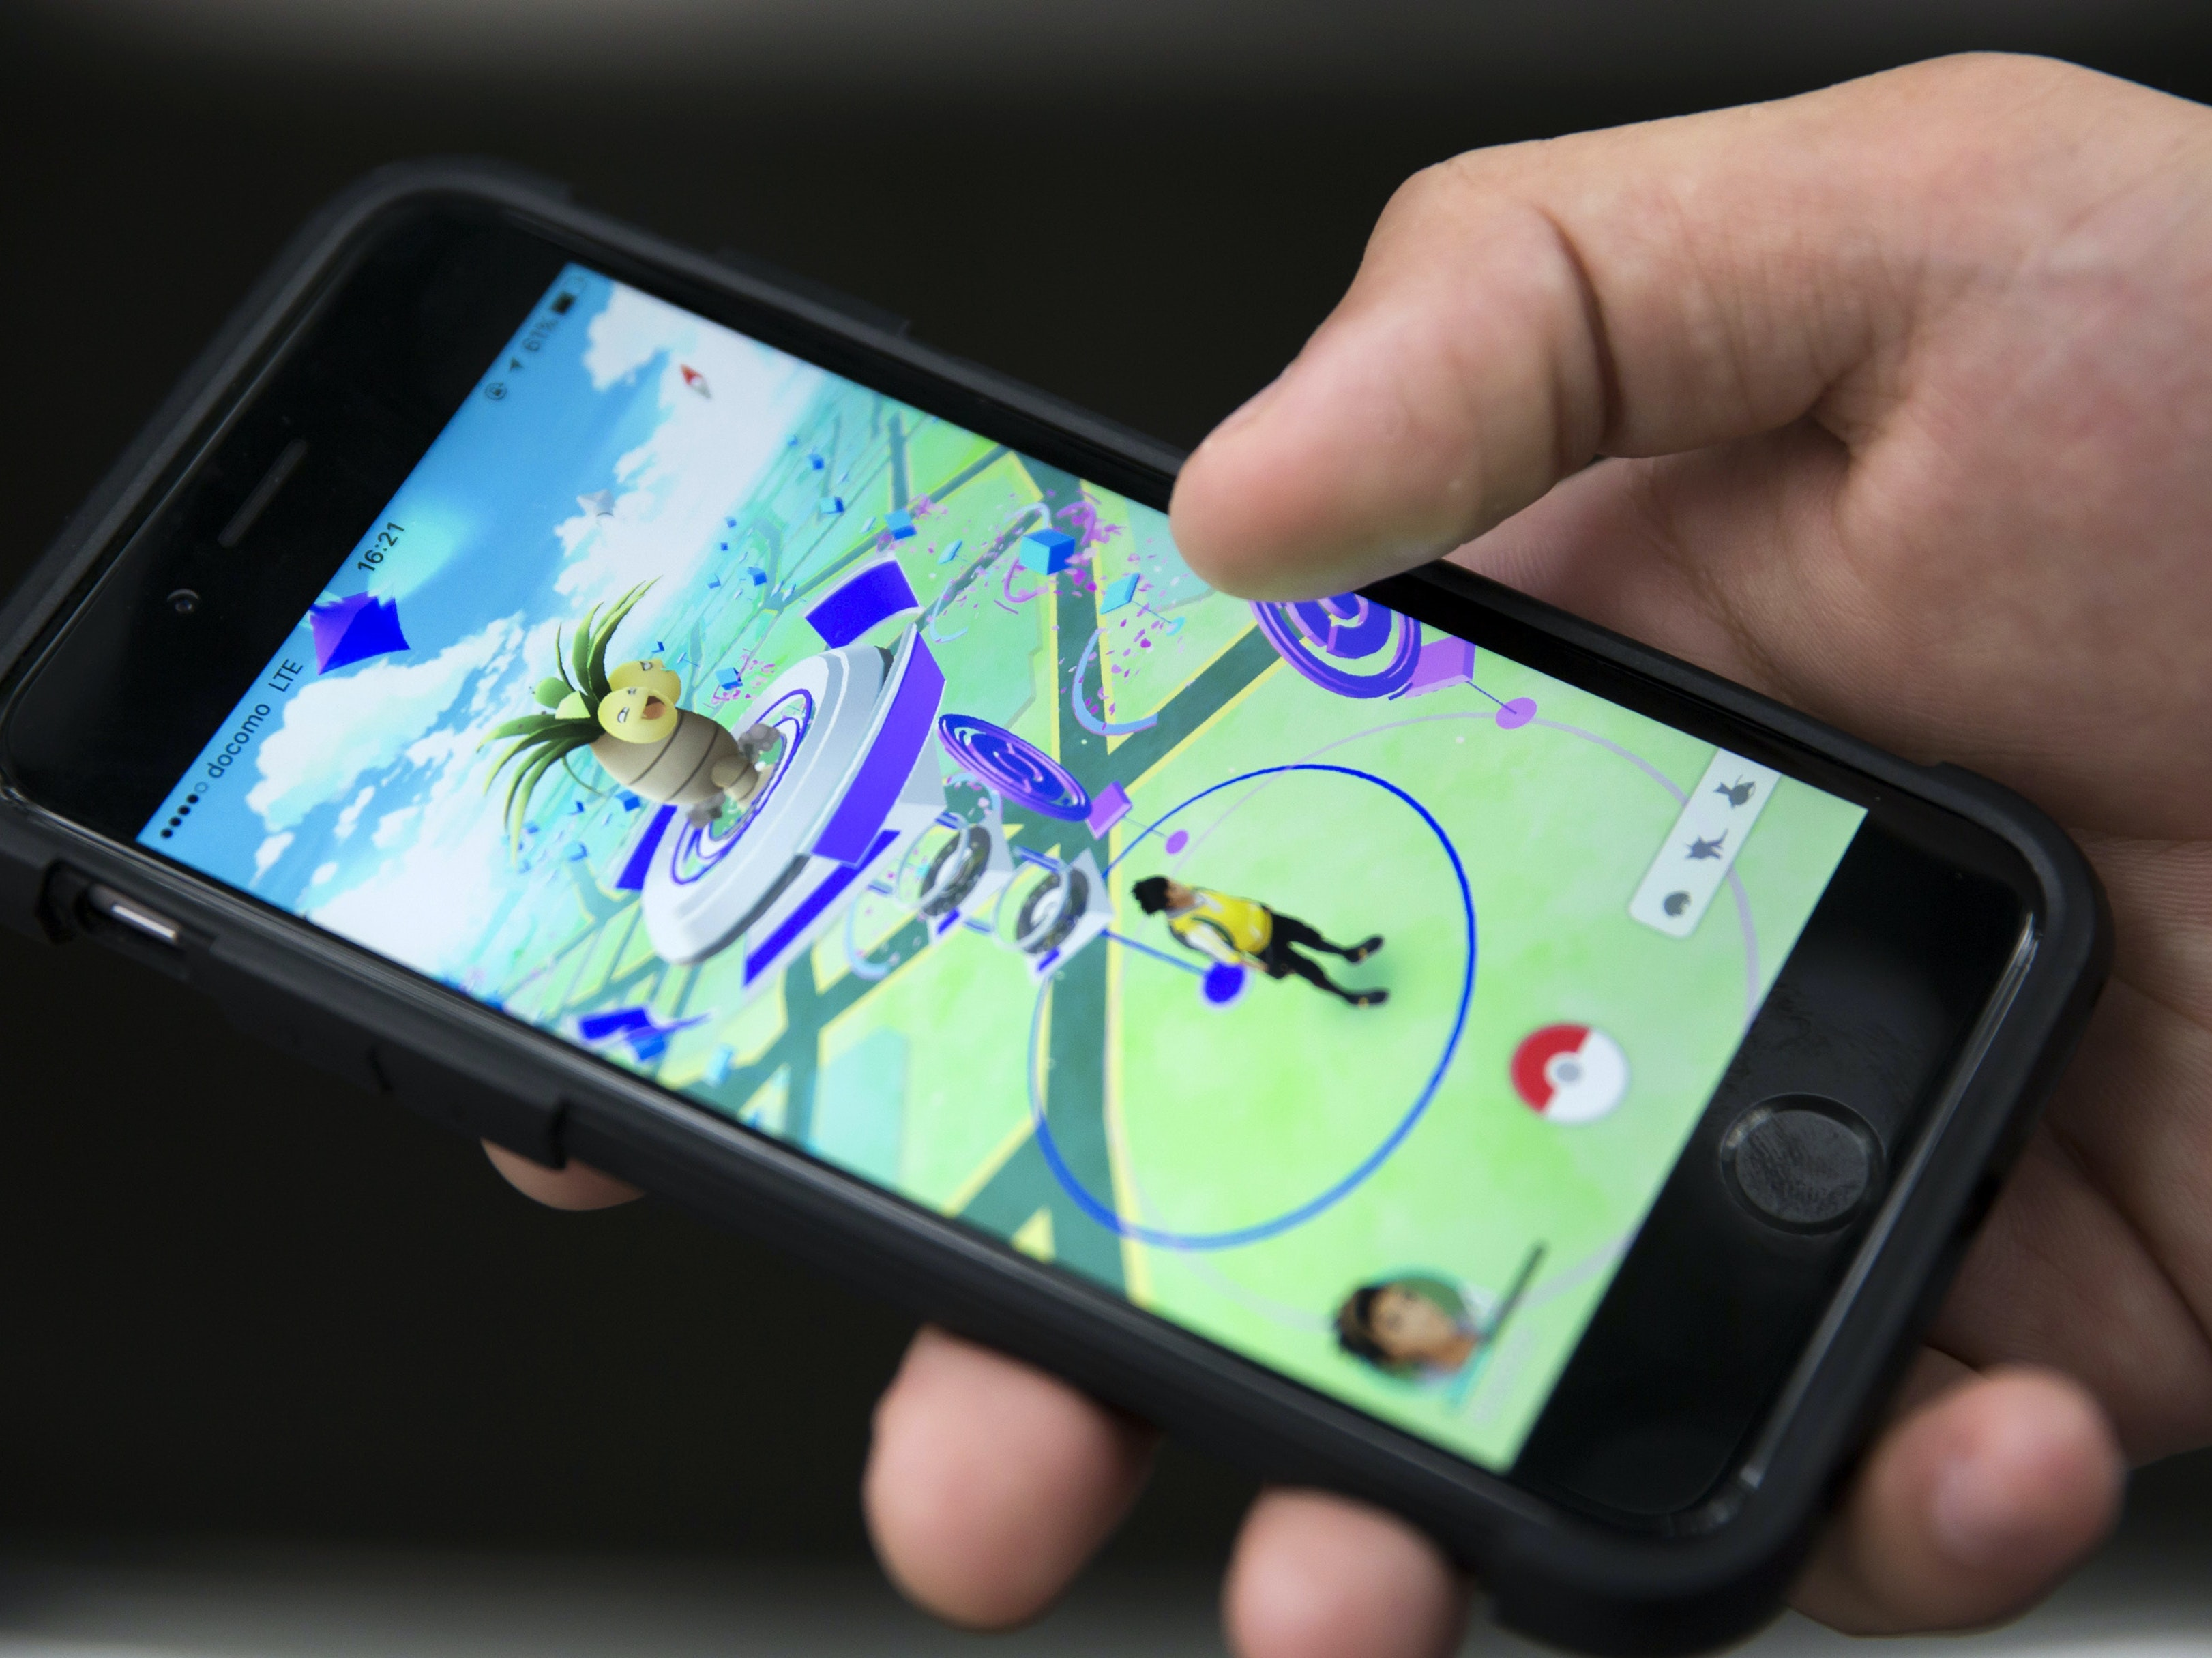 'Pokemon Go' Is Not a License to Trespass